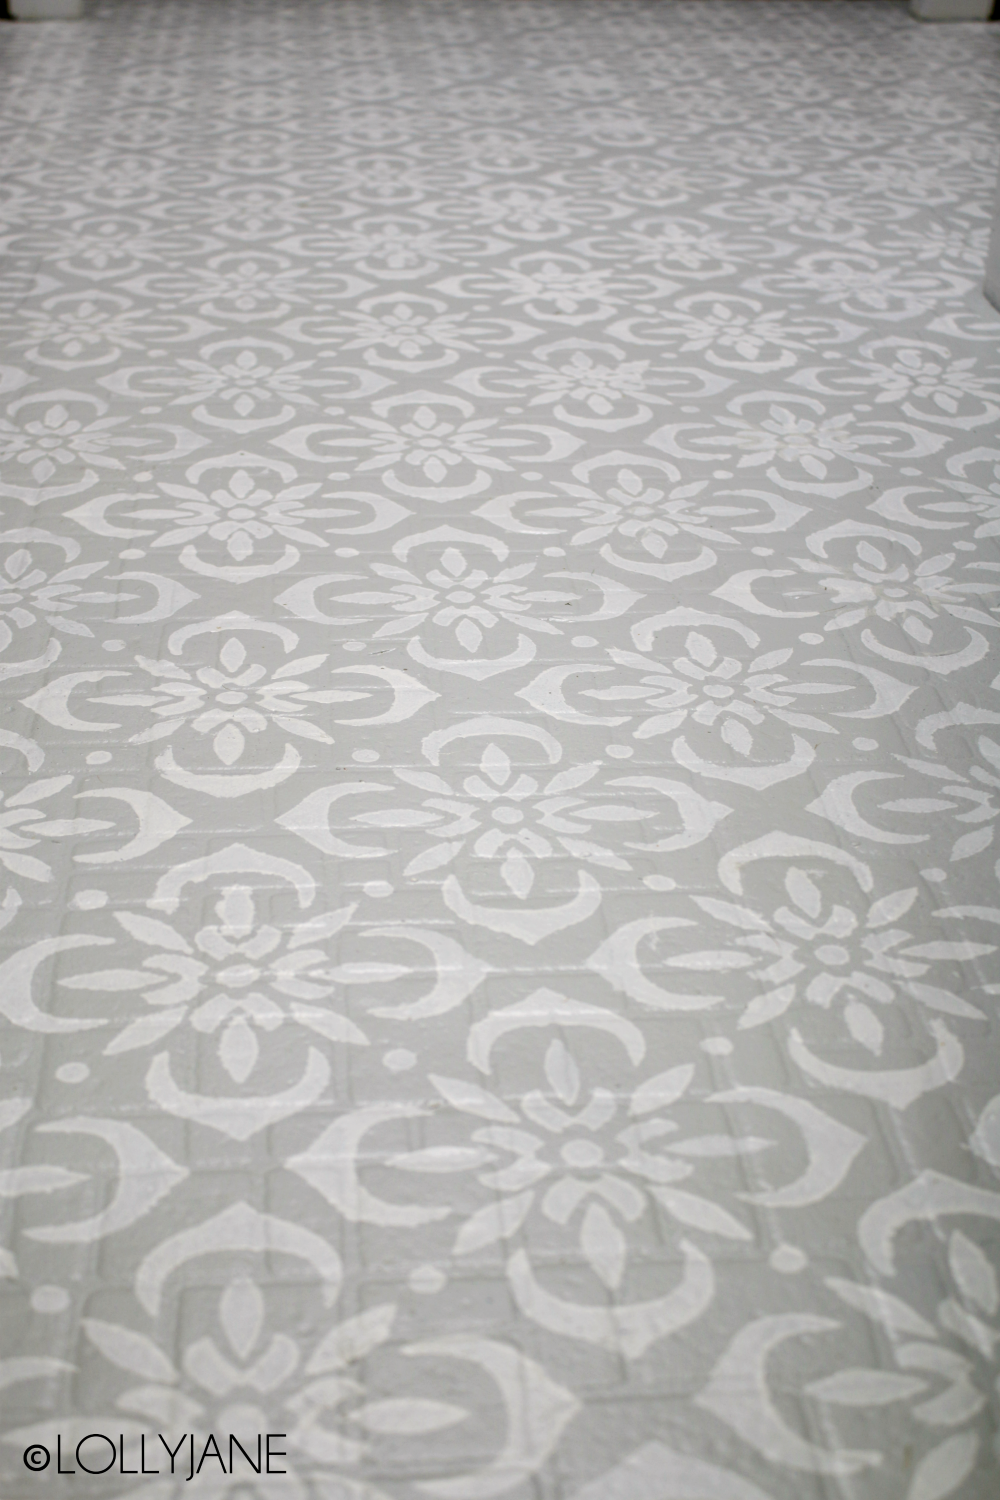 Gorgeous stenciled floor on 40-year old LINOLEUM floor! Easiest ever tutorial and step-by-step directions to paint your own floors! #paintedfloors #diy #stenciledfloors